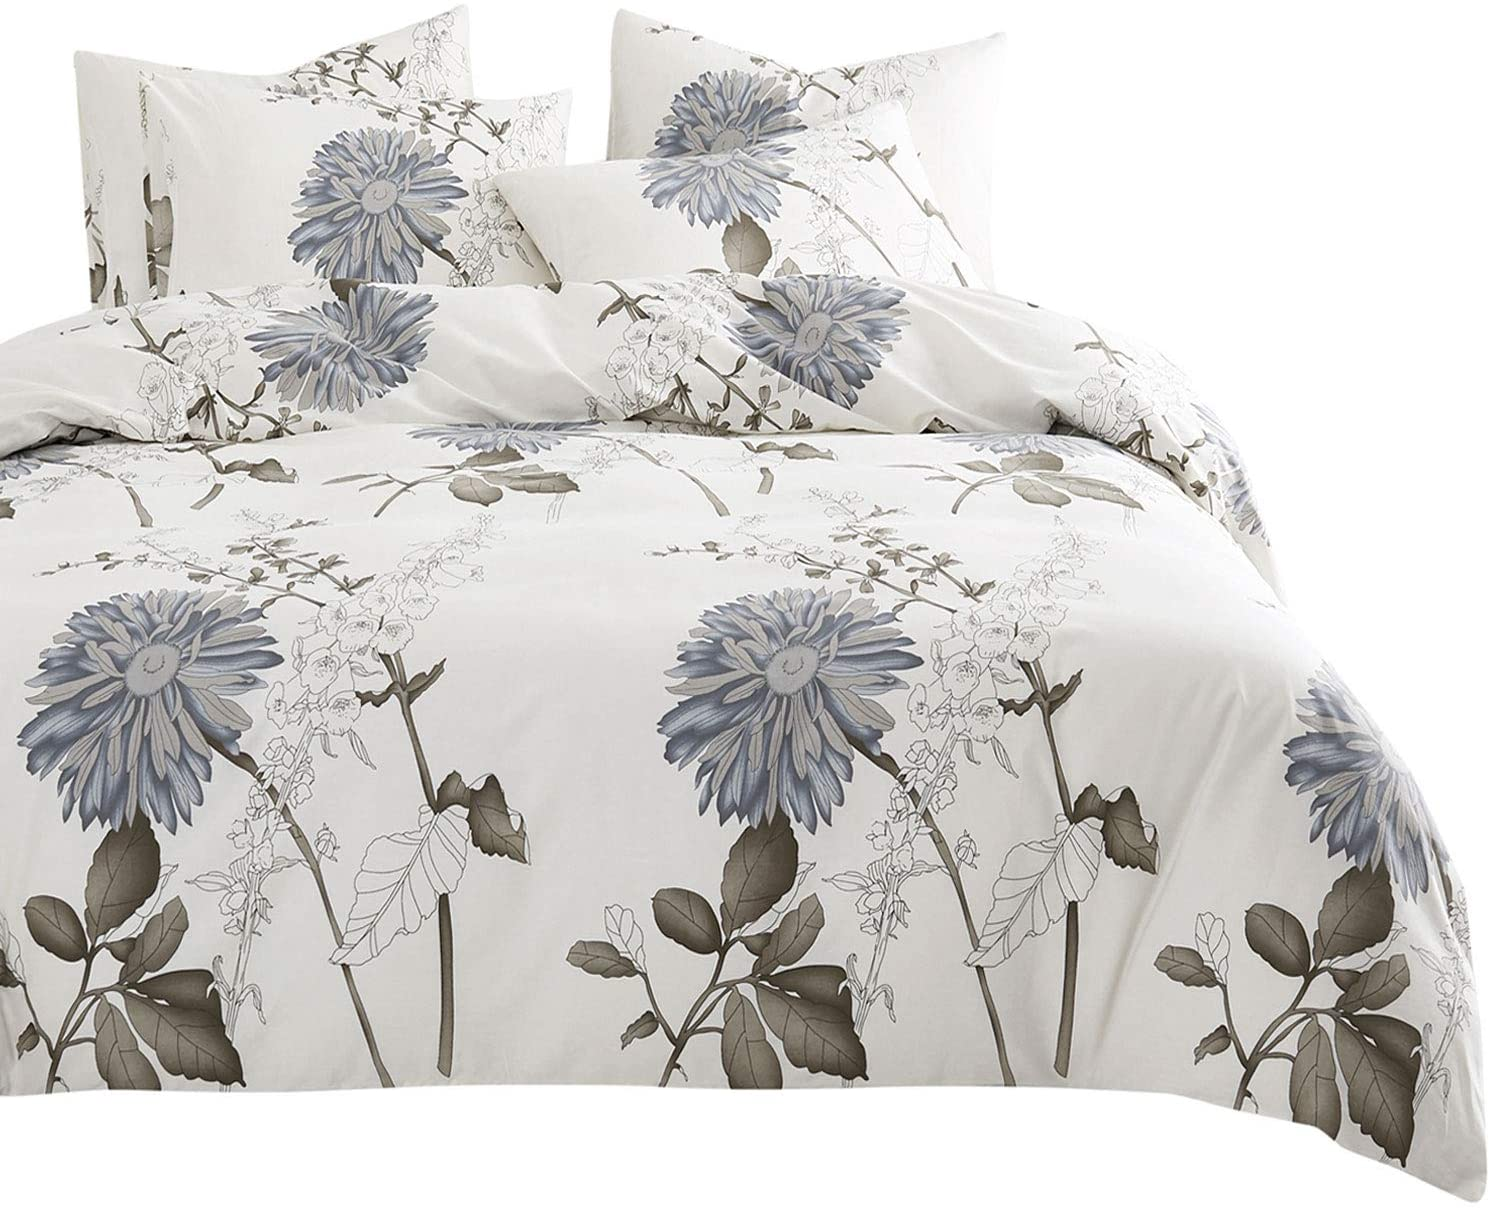 Wake In Cloud - Floral Comforter Set, 4 Pillow Cases, Botanical Flowers Pattern Printed, 100% Cotton Fabric with Soft Microfiber Inner Fill Bedding (Queen Size)